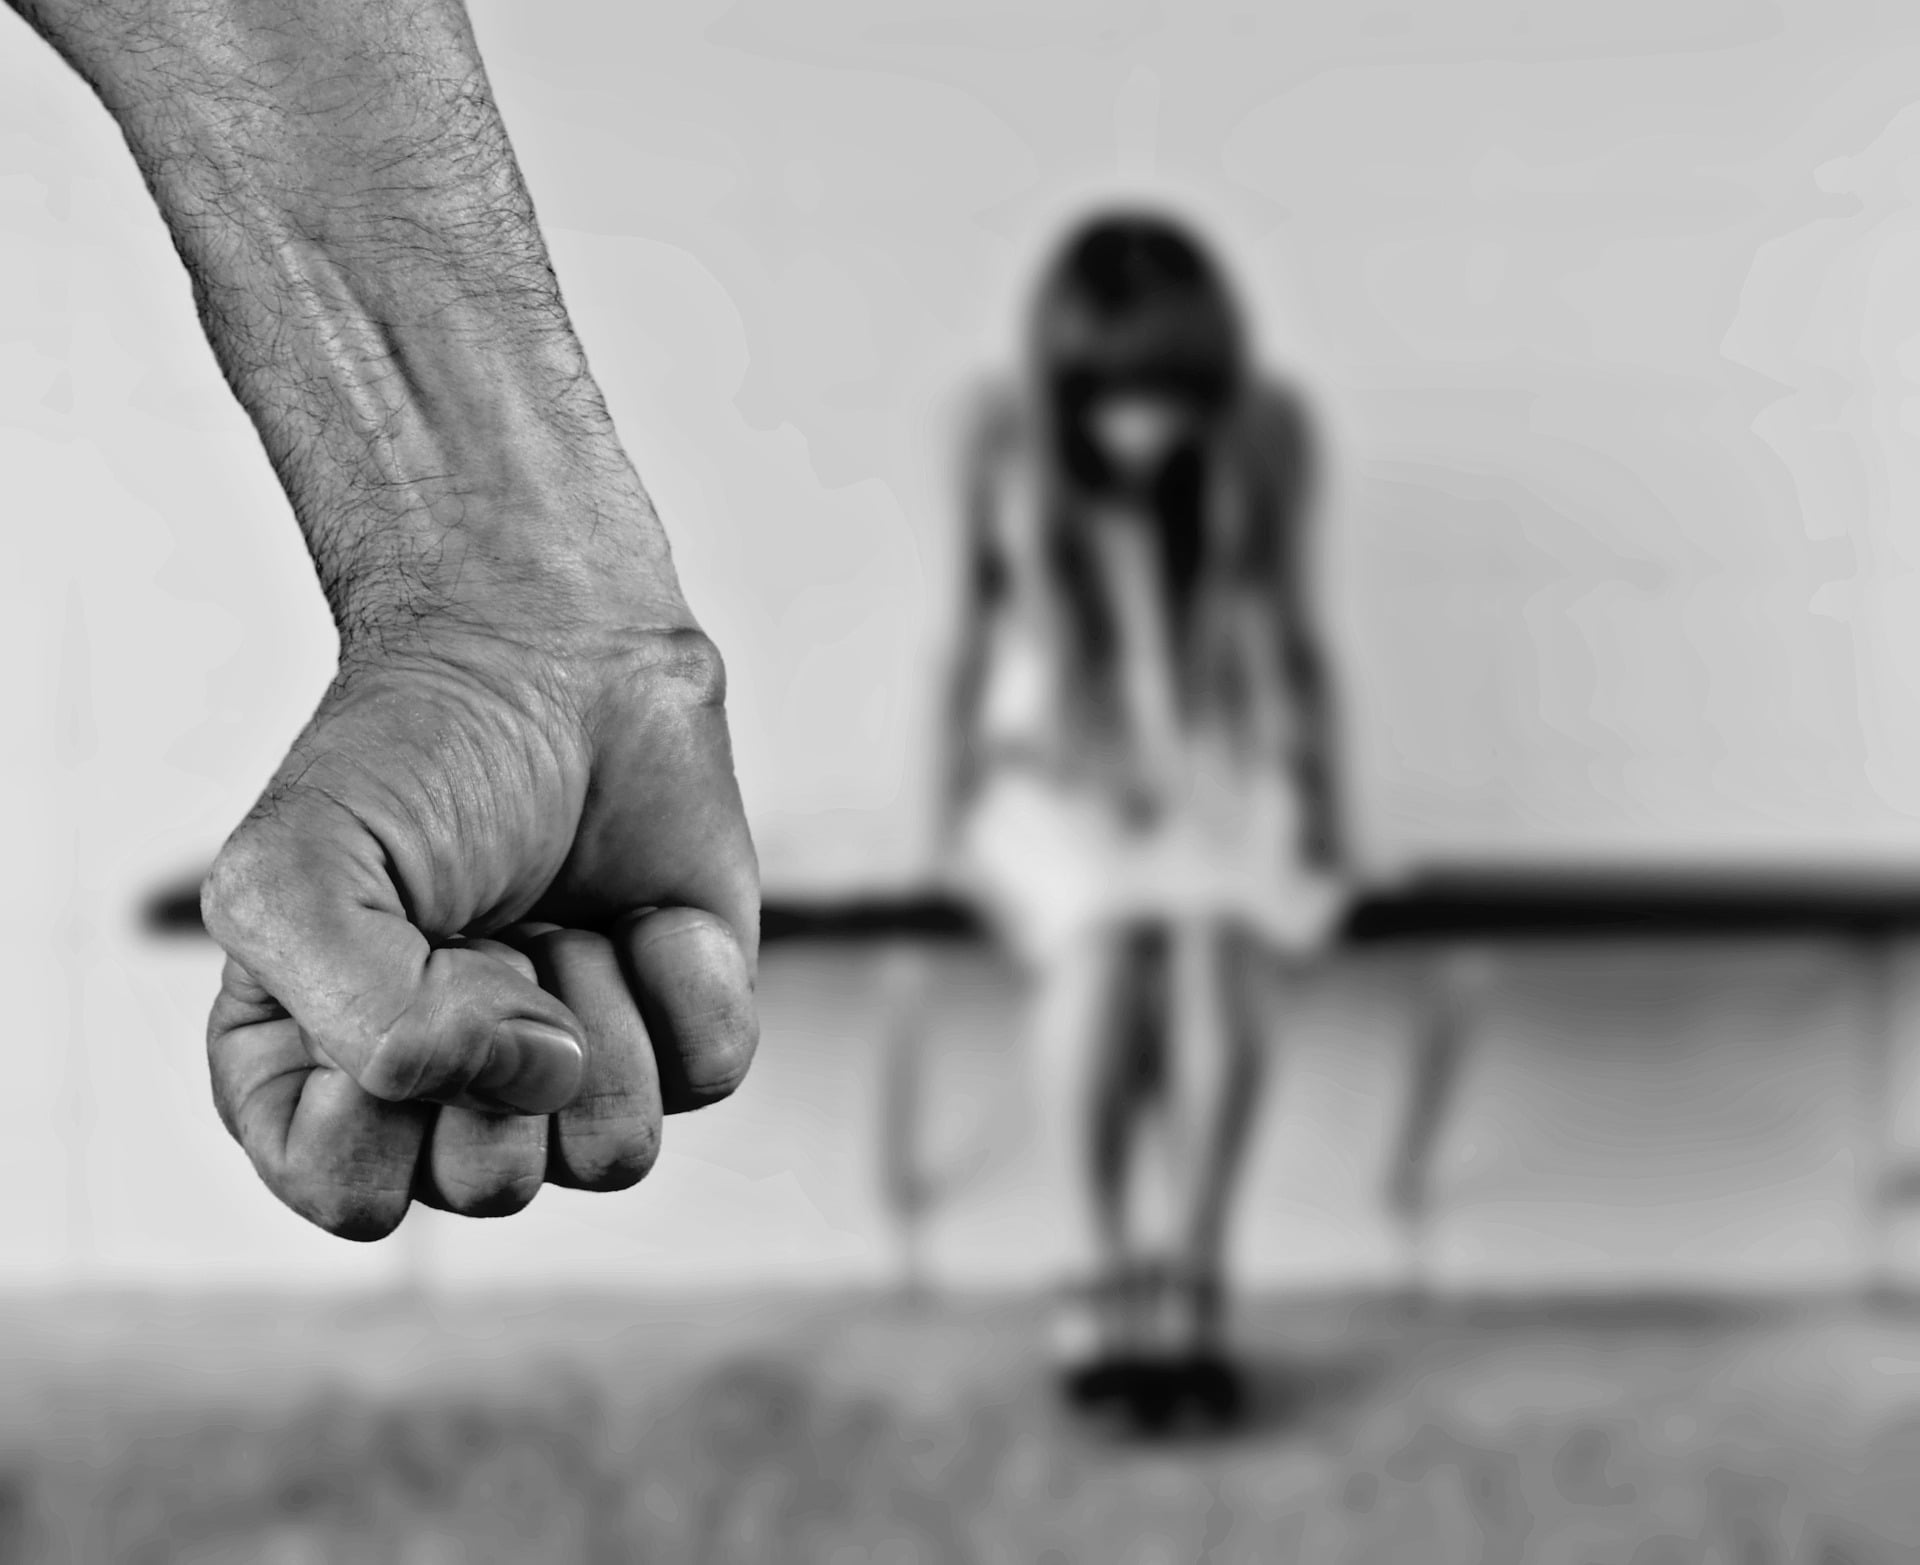 human trafficking relies on fear and intimidation